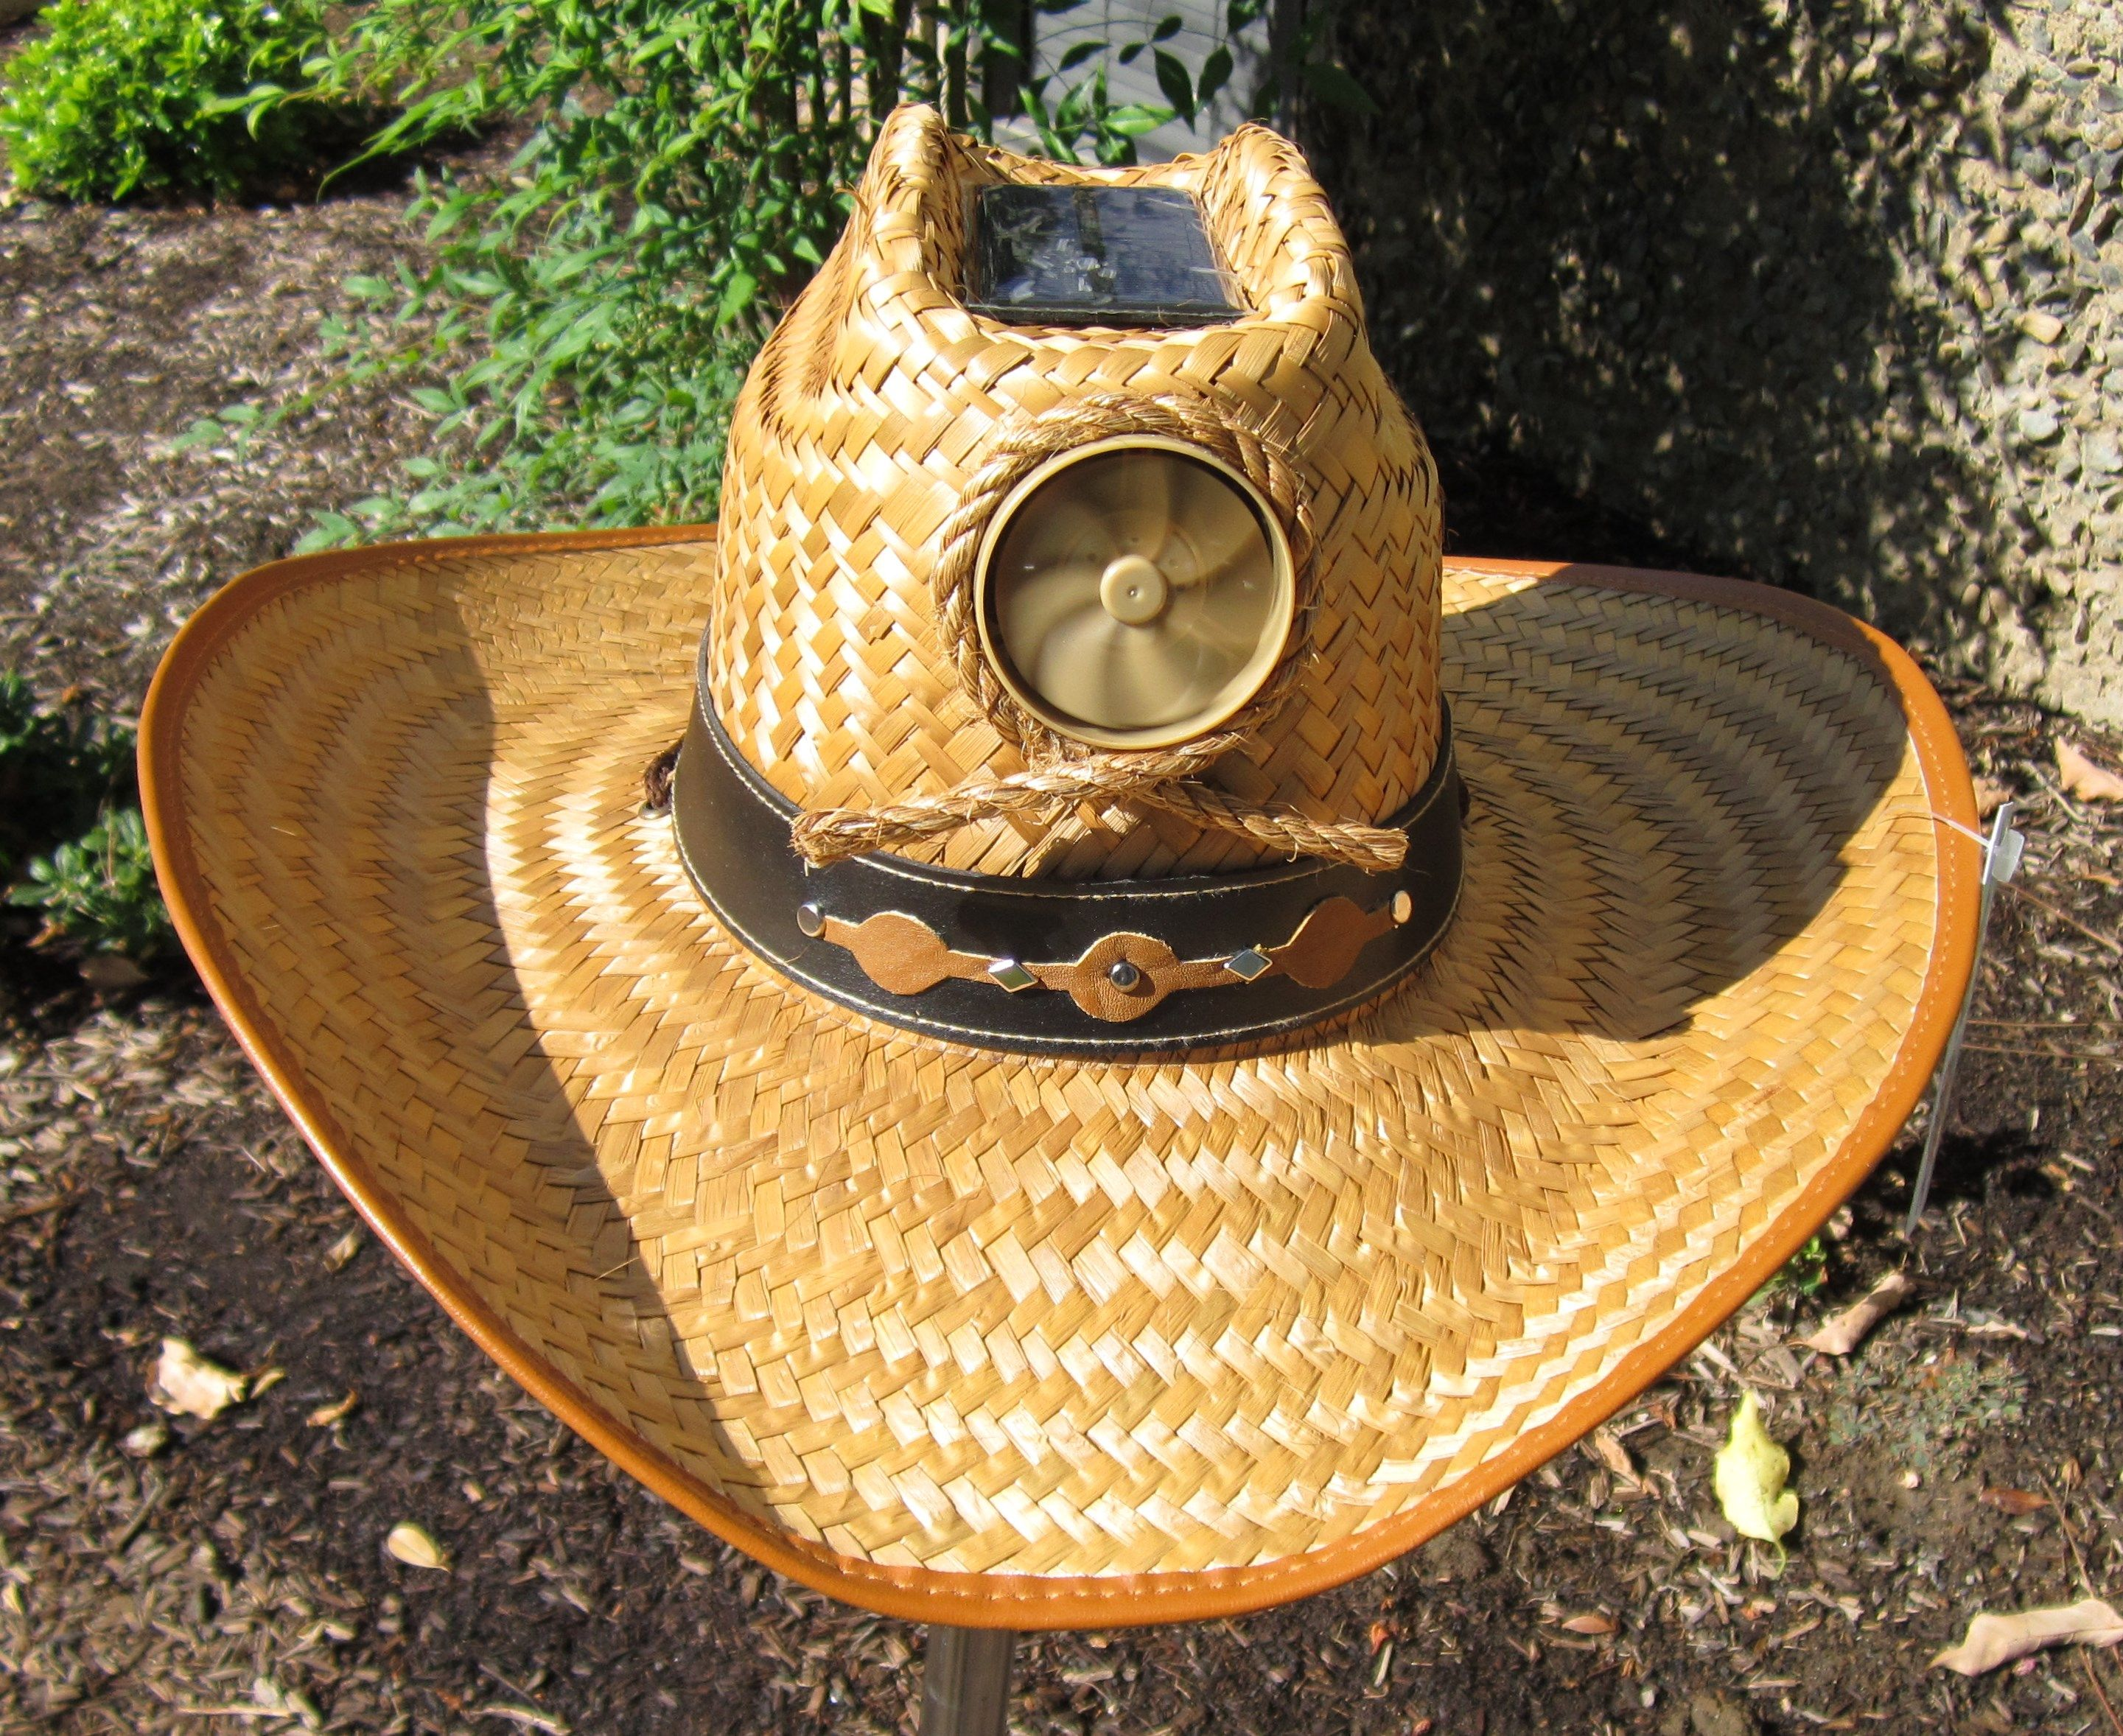 a57e5b124 Kool Breeze Solar Hat to keep you cool on the ranch! Western style ...